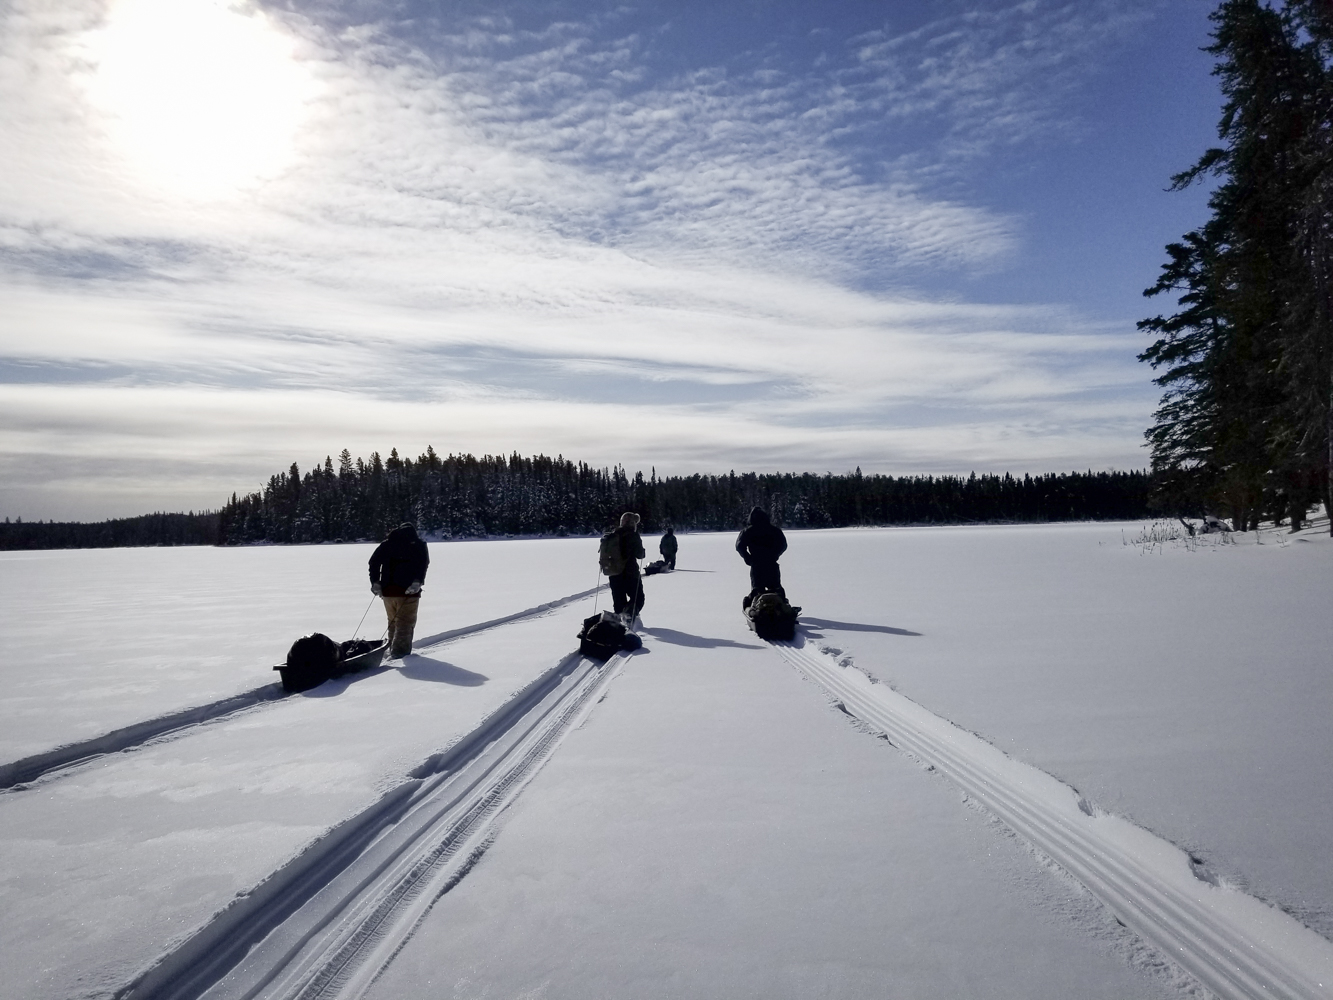 Making fresh tracks on an undisturbed lake (Goodson)